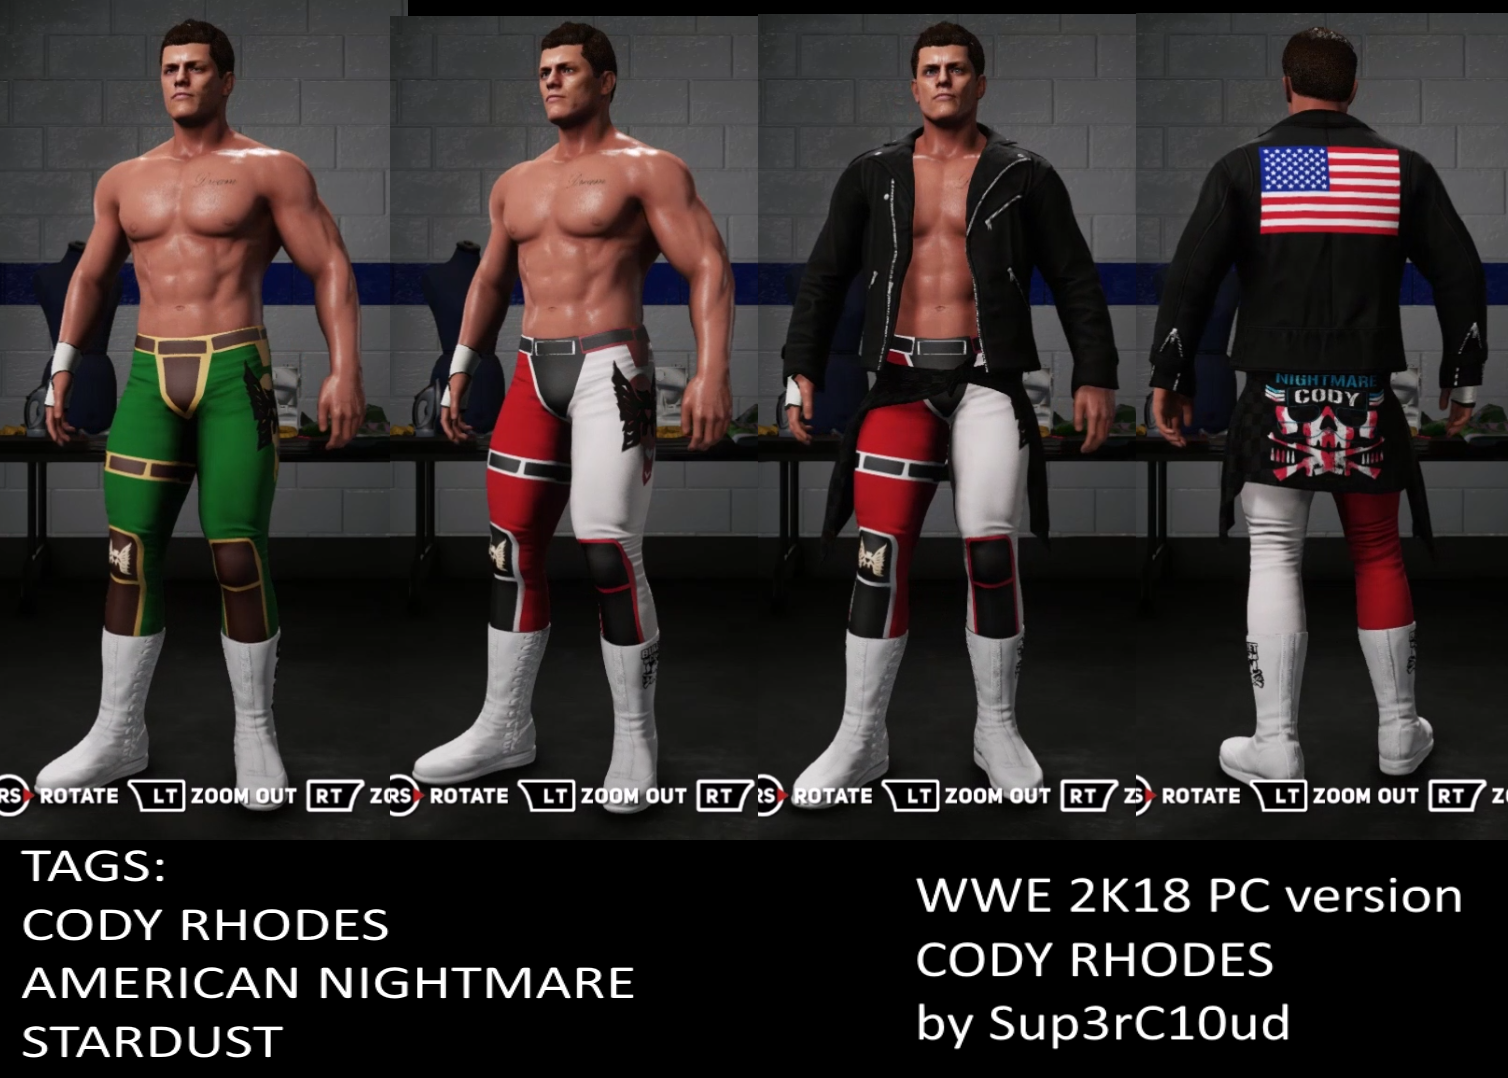 Cody_Rhodes_Preview_PC2k18.png